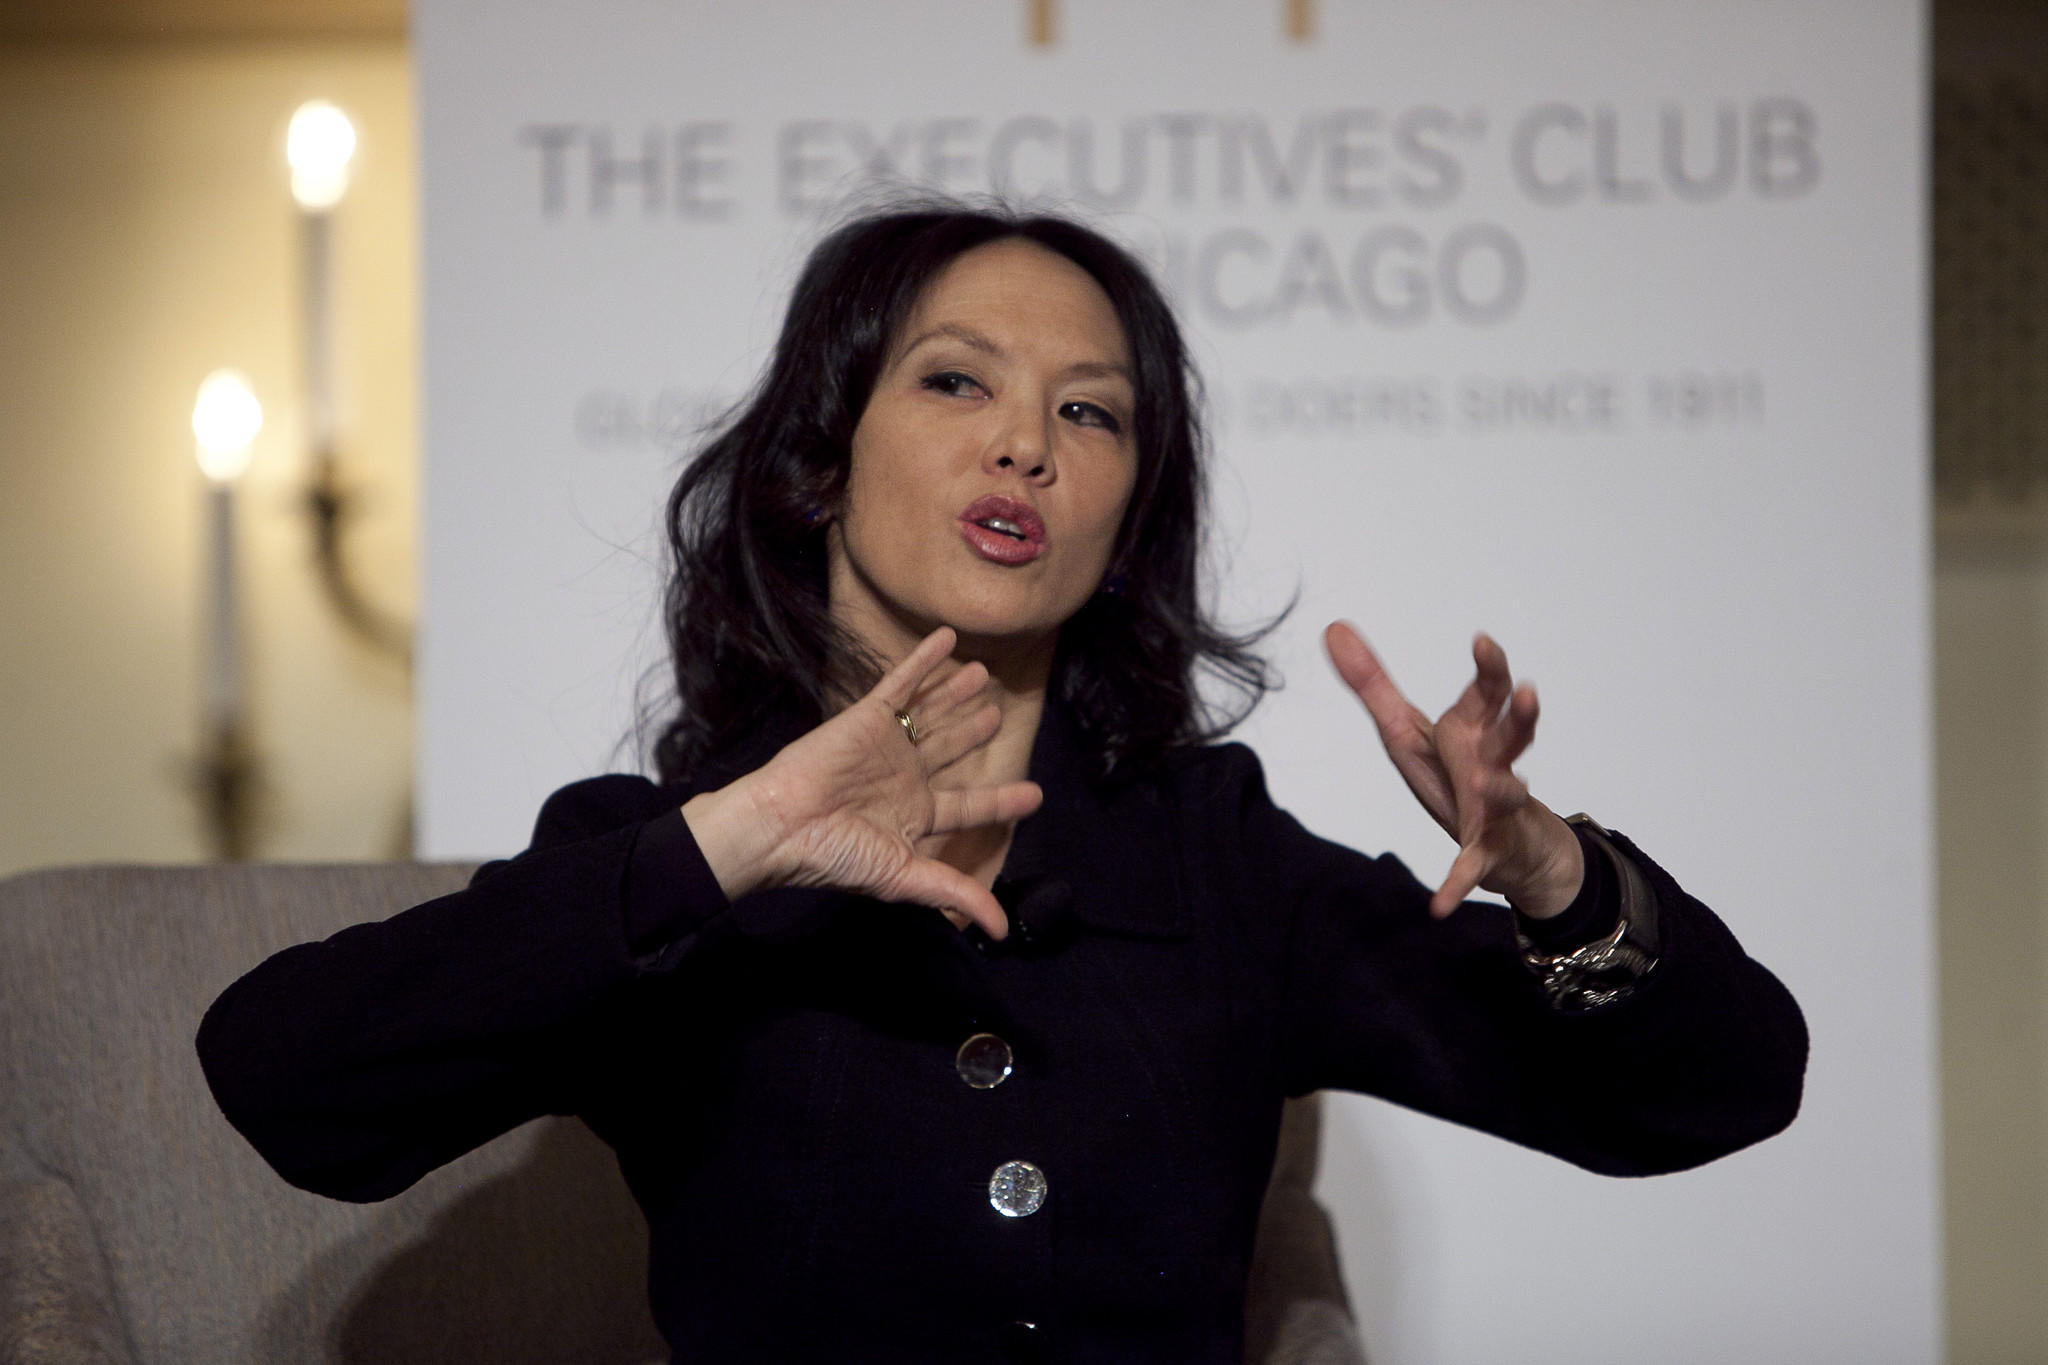 Amy Chua, author of 'Battle Hymn of the Tiger Mother,' talks to members of the Executives' Club of Chicago at the Palmer House Hilton March 5, 2014 in Chicago Ill.